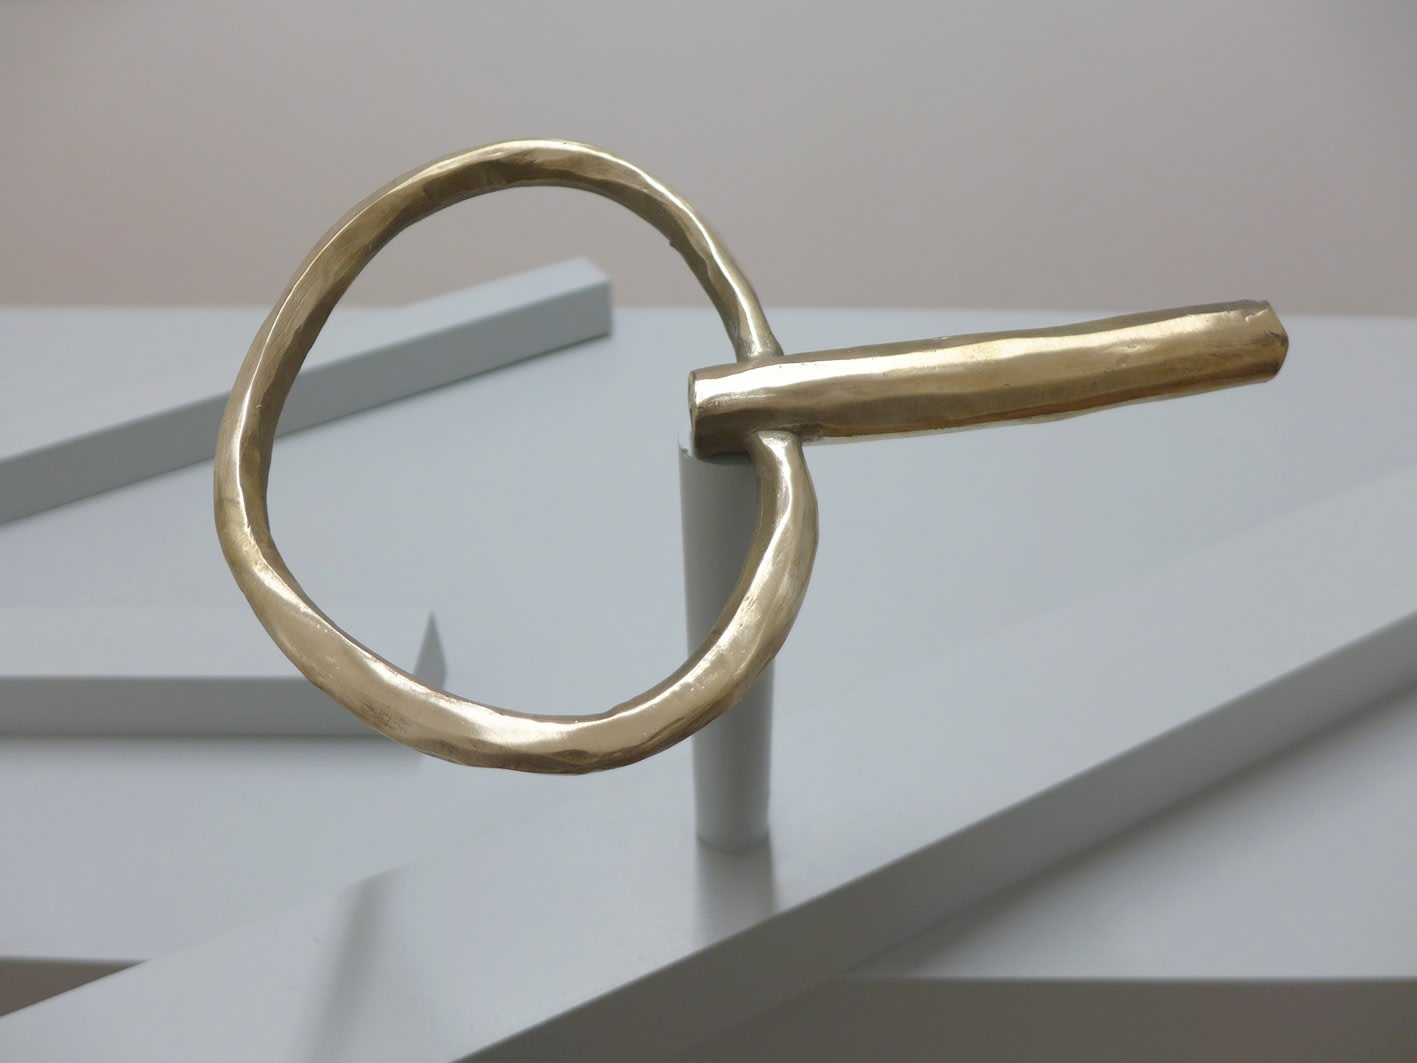 Bianca Hester, performance object #4, 2014